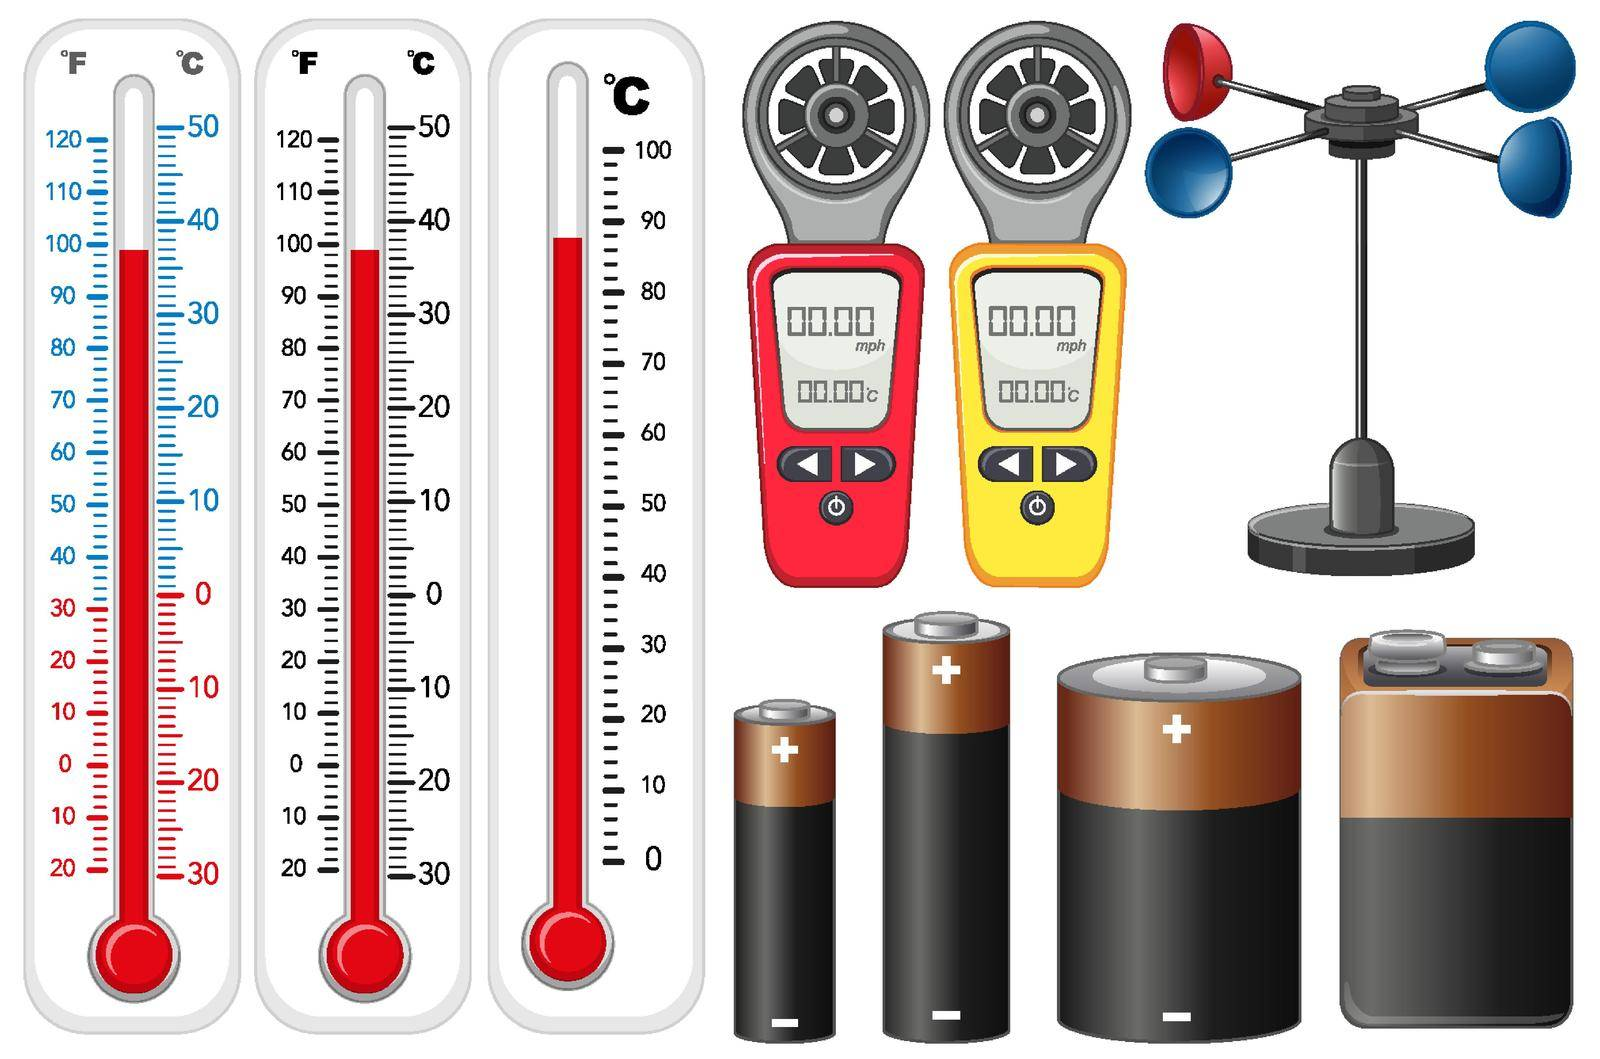 Different types of measurement devices on white background illustration